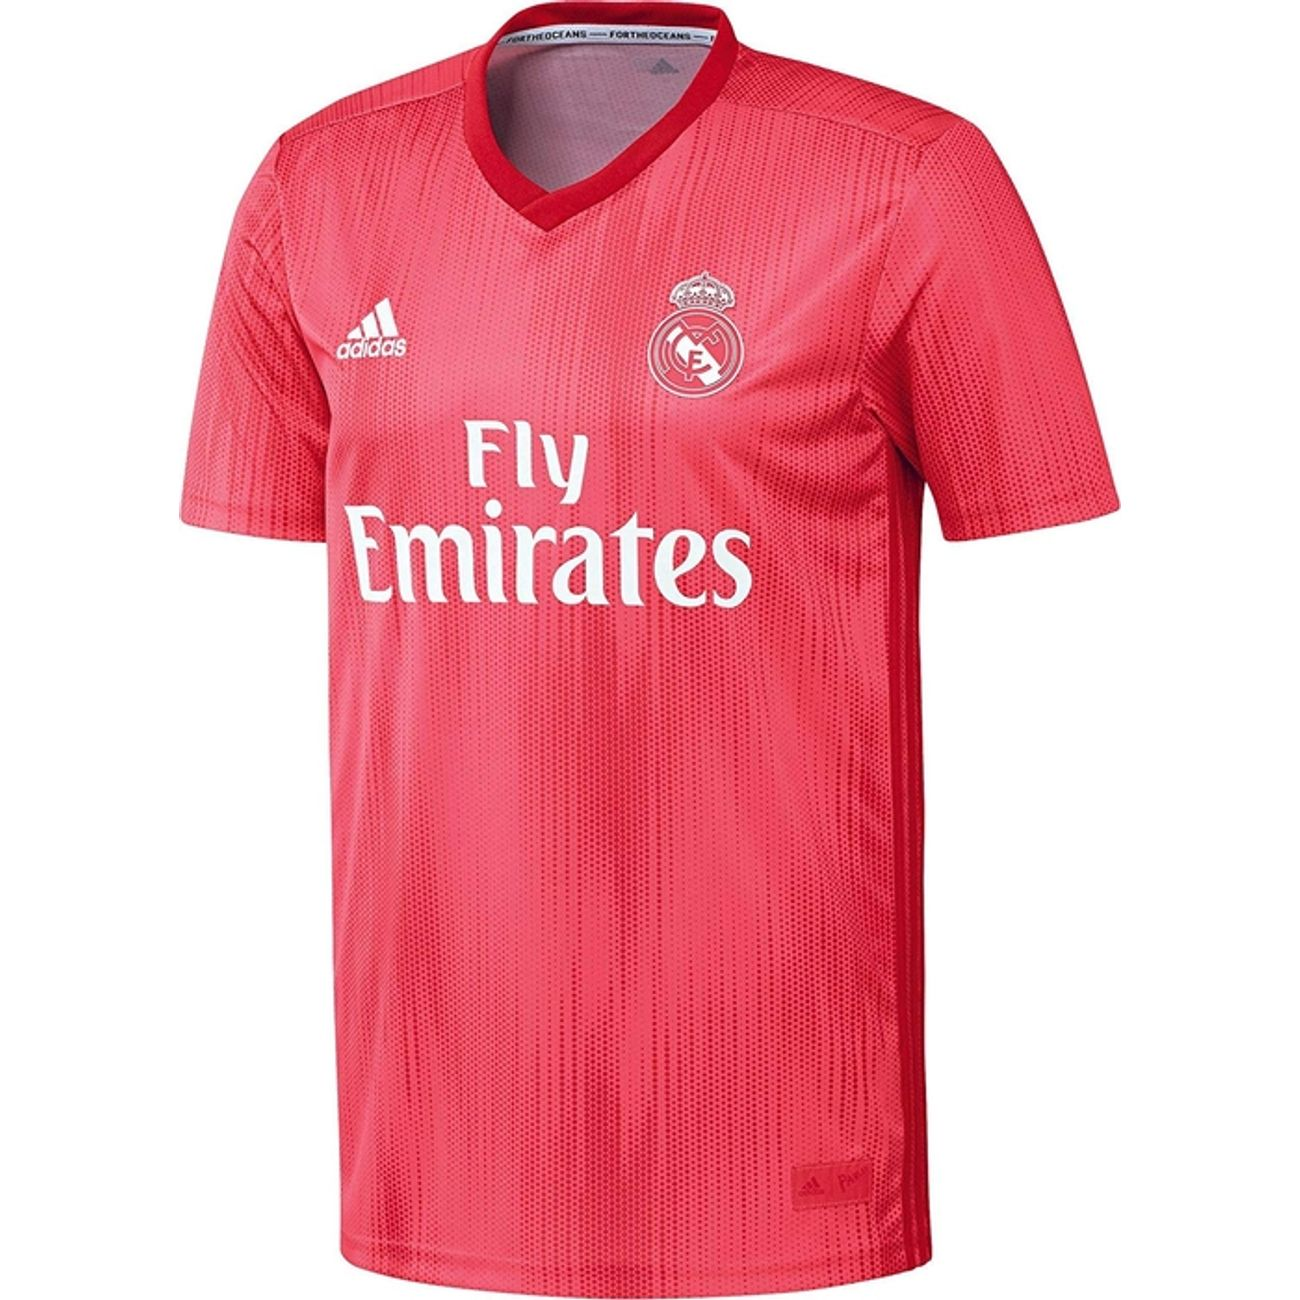 MAILLOT  homme ADIDAS MAILLOT ENTRAINEMENT homme ADIDAS REAL MAILLOT THIRD 2018-2019